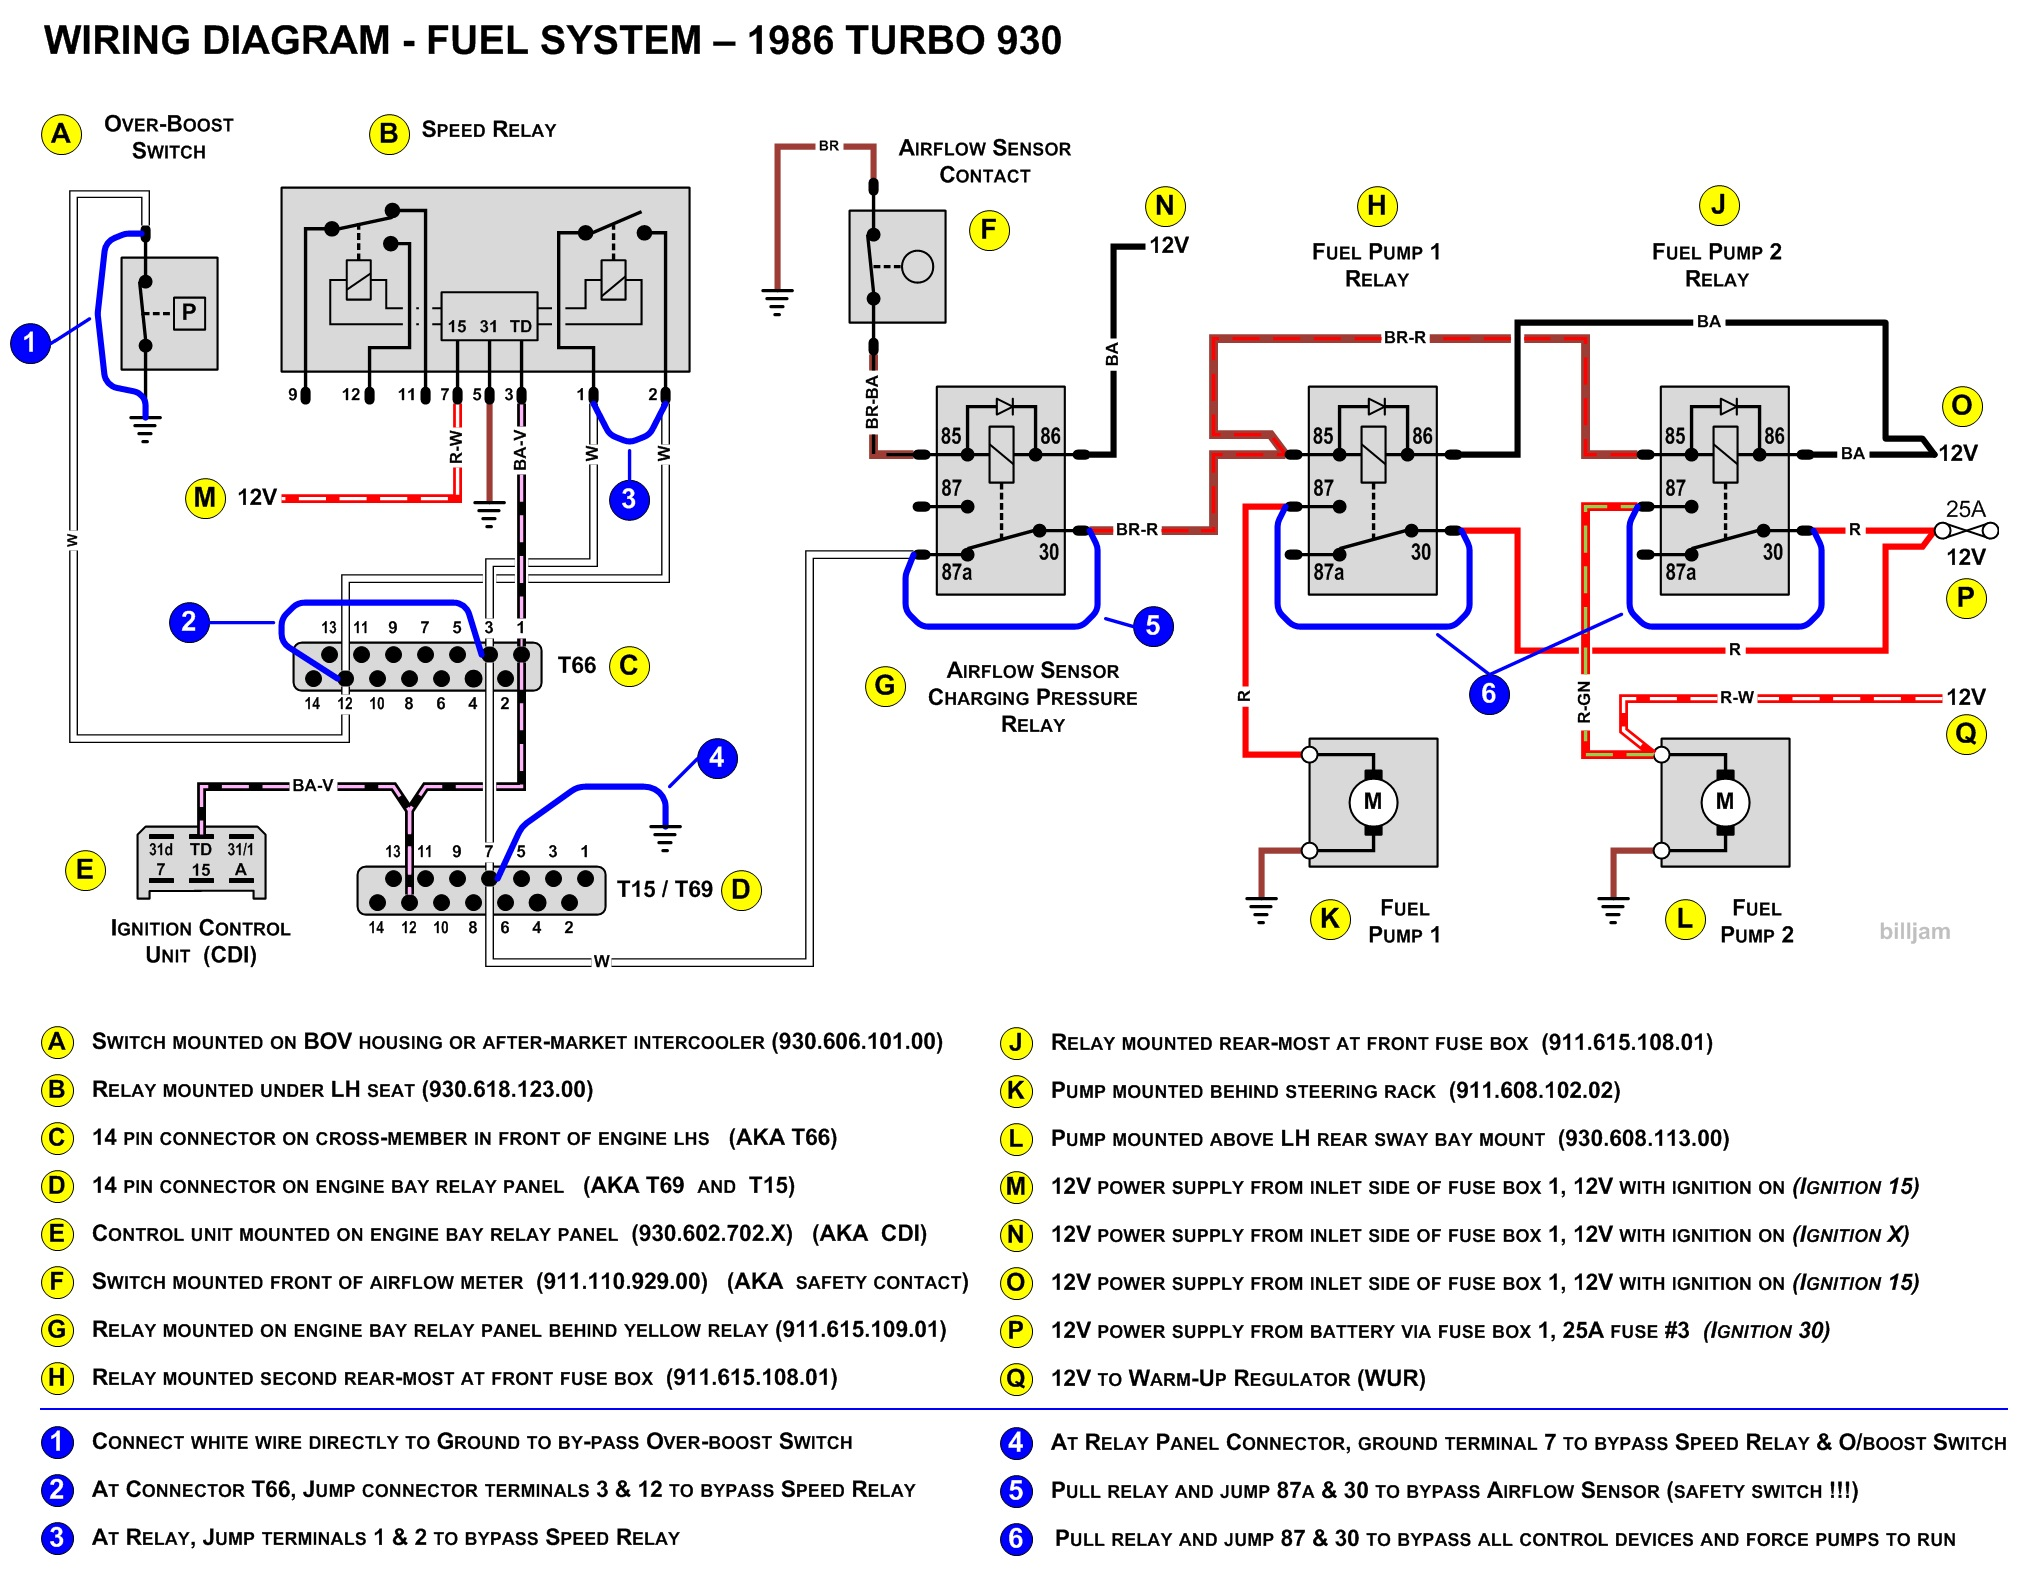 86 porsche 930 fuel system wiring diagram jumpers made a fuse box label for my 88 page 3 pelican parts technical bbs fuse box label at bakdesigns.co